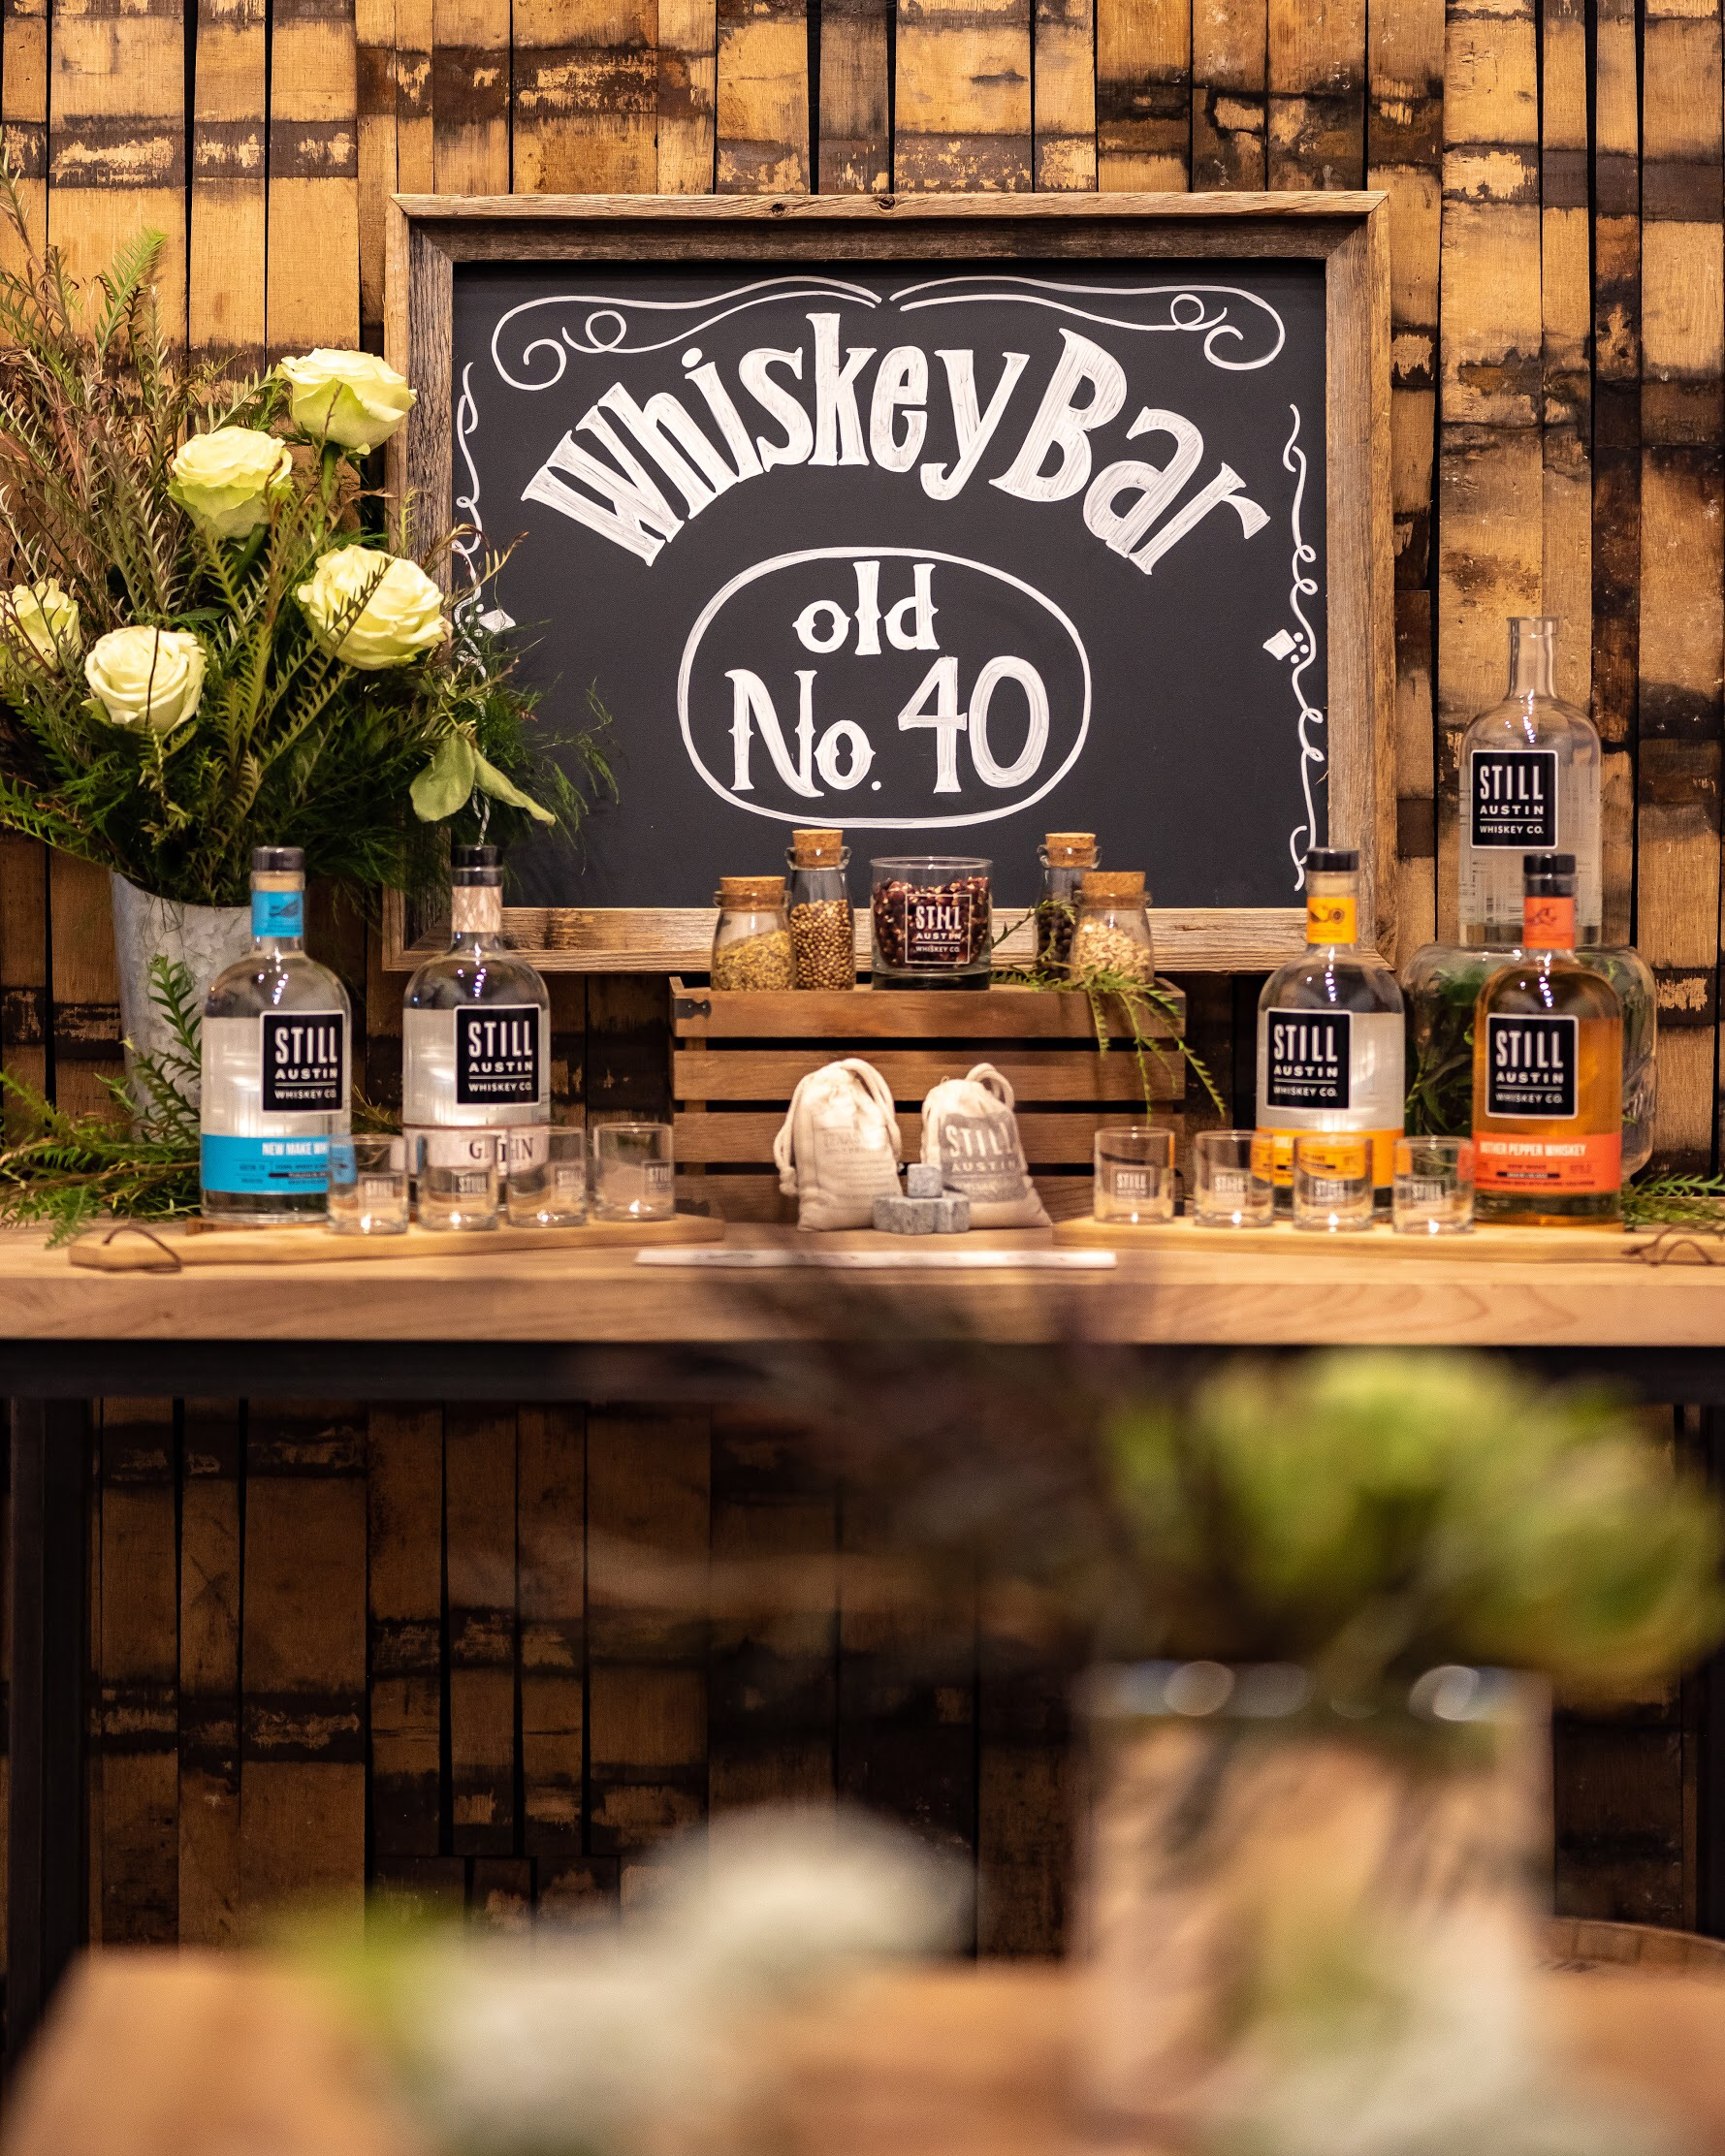 A Whiskey tasting bar— what a great idea for a men's birthday party!